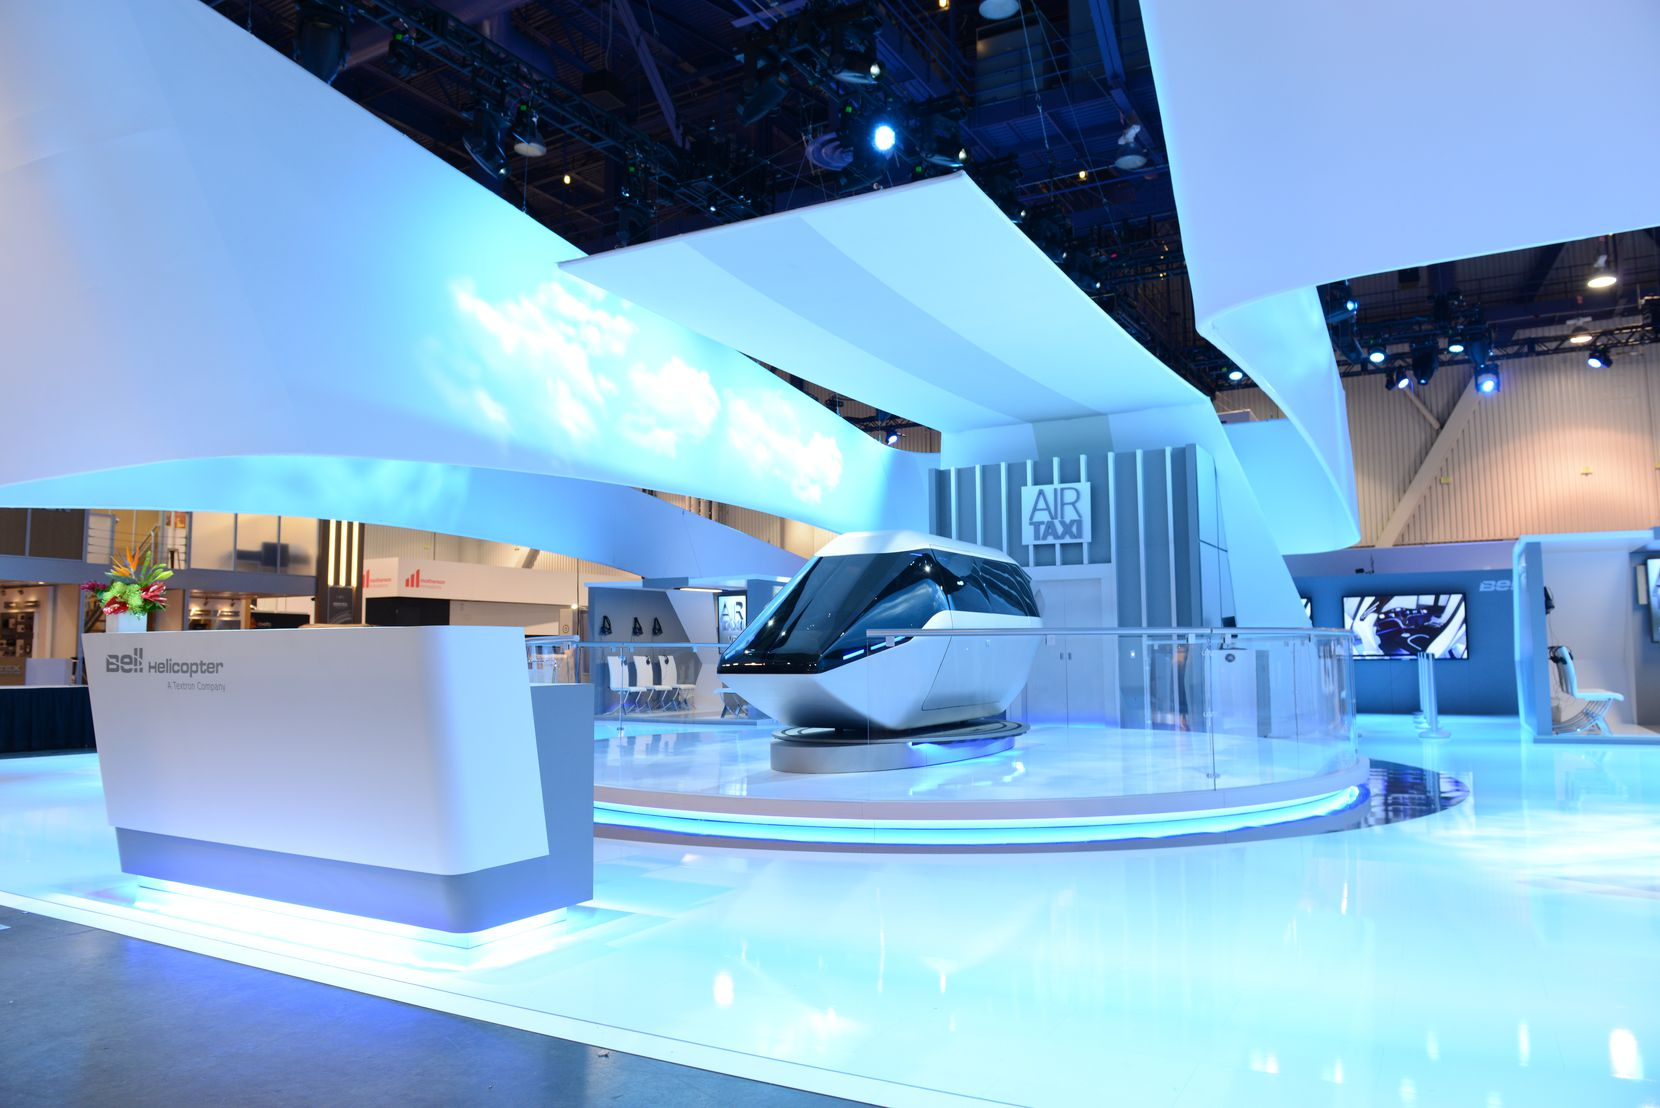 Bell Helicopter made its first appearance at CES, a popular technology show in Las Vegas, to show off the design of its air taxi.